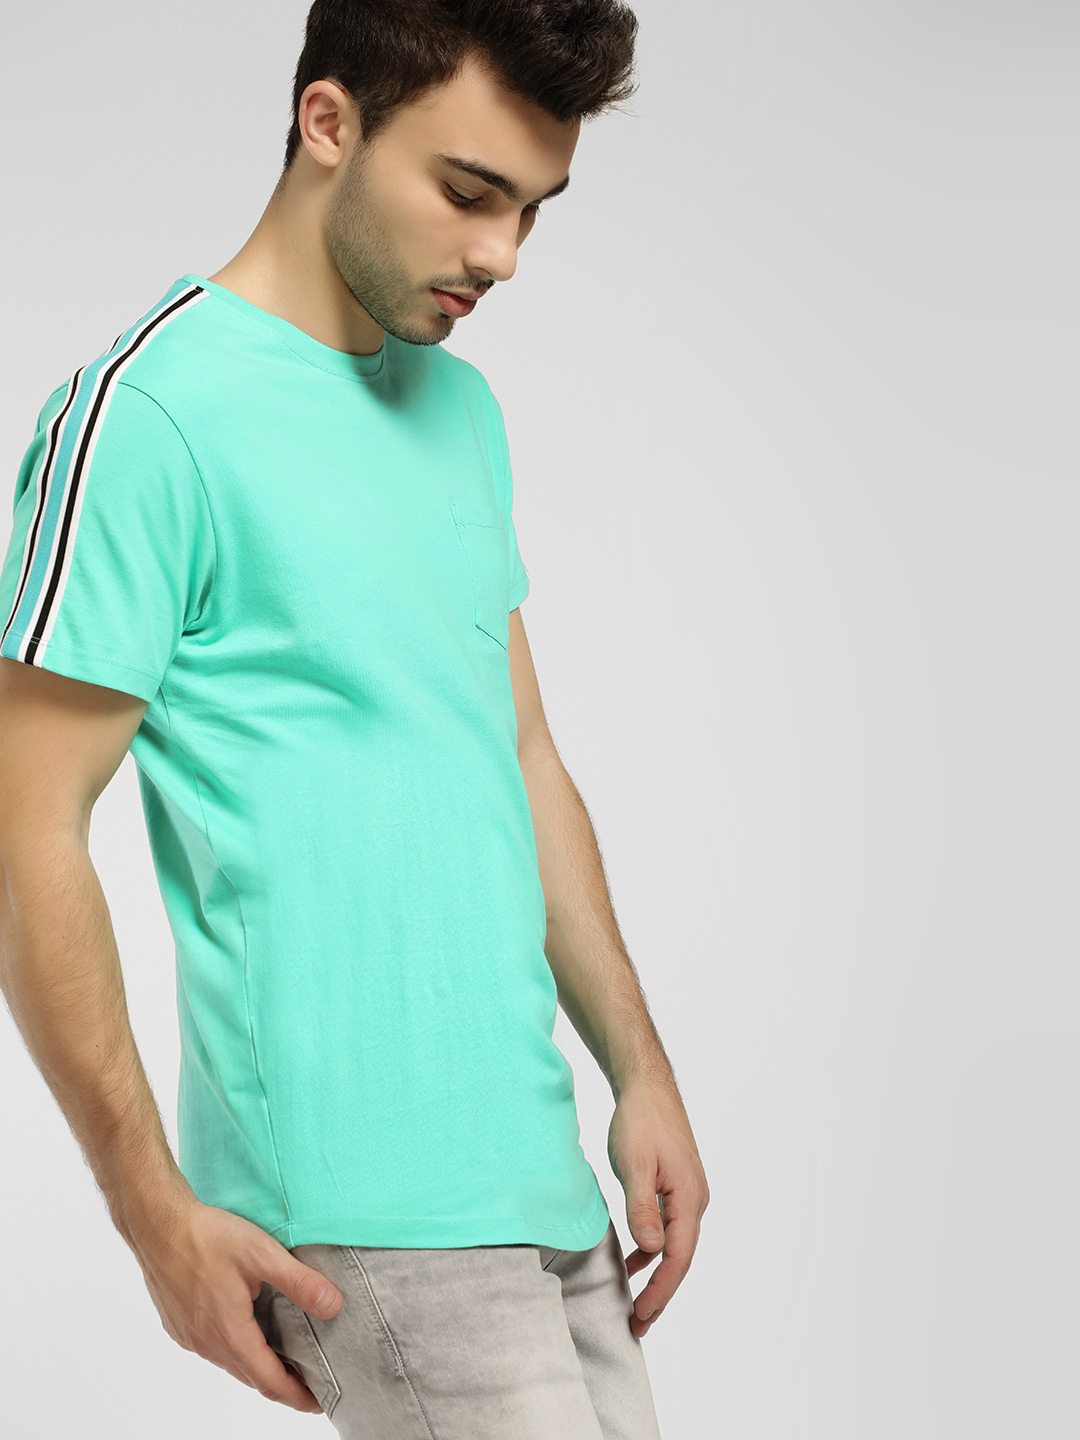 KOOVS Green Tape Trim Curved Hem T-Shirt 1